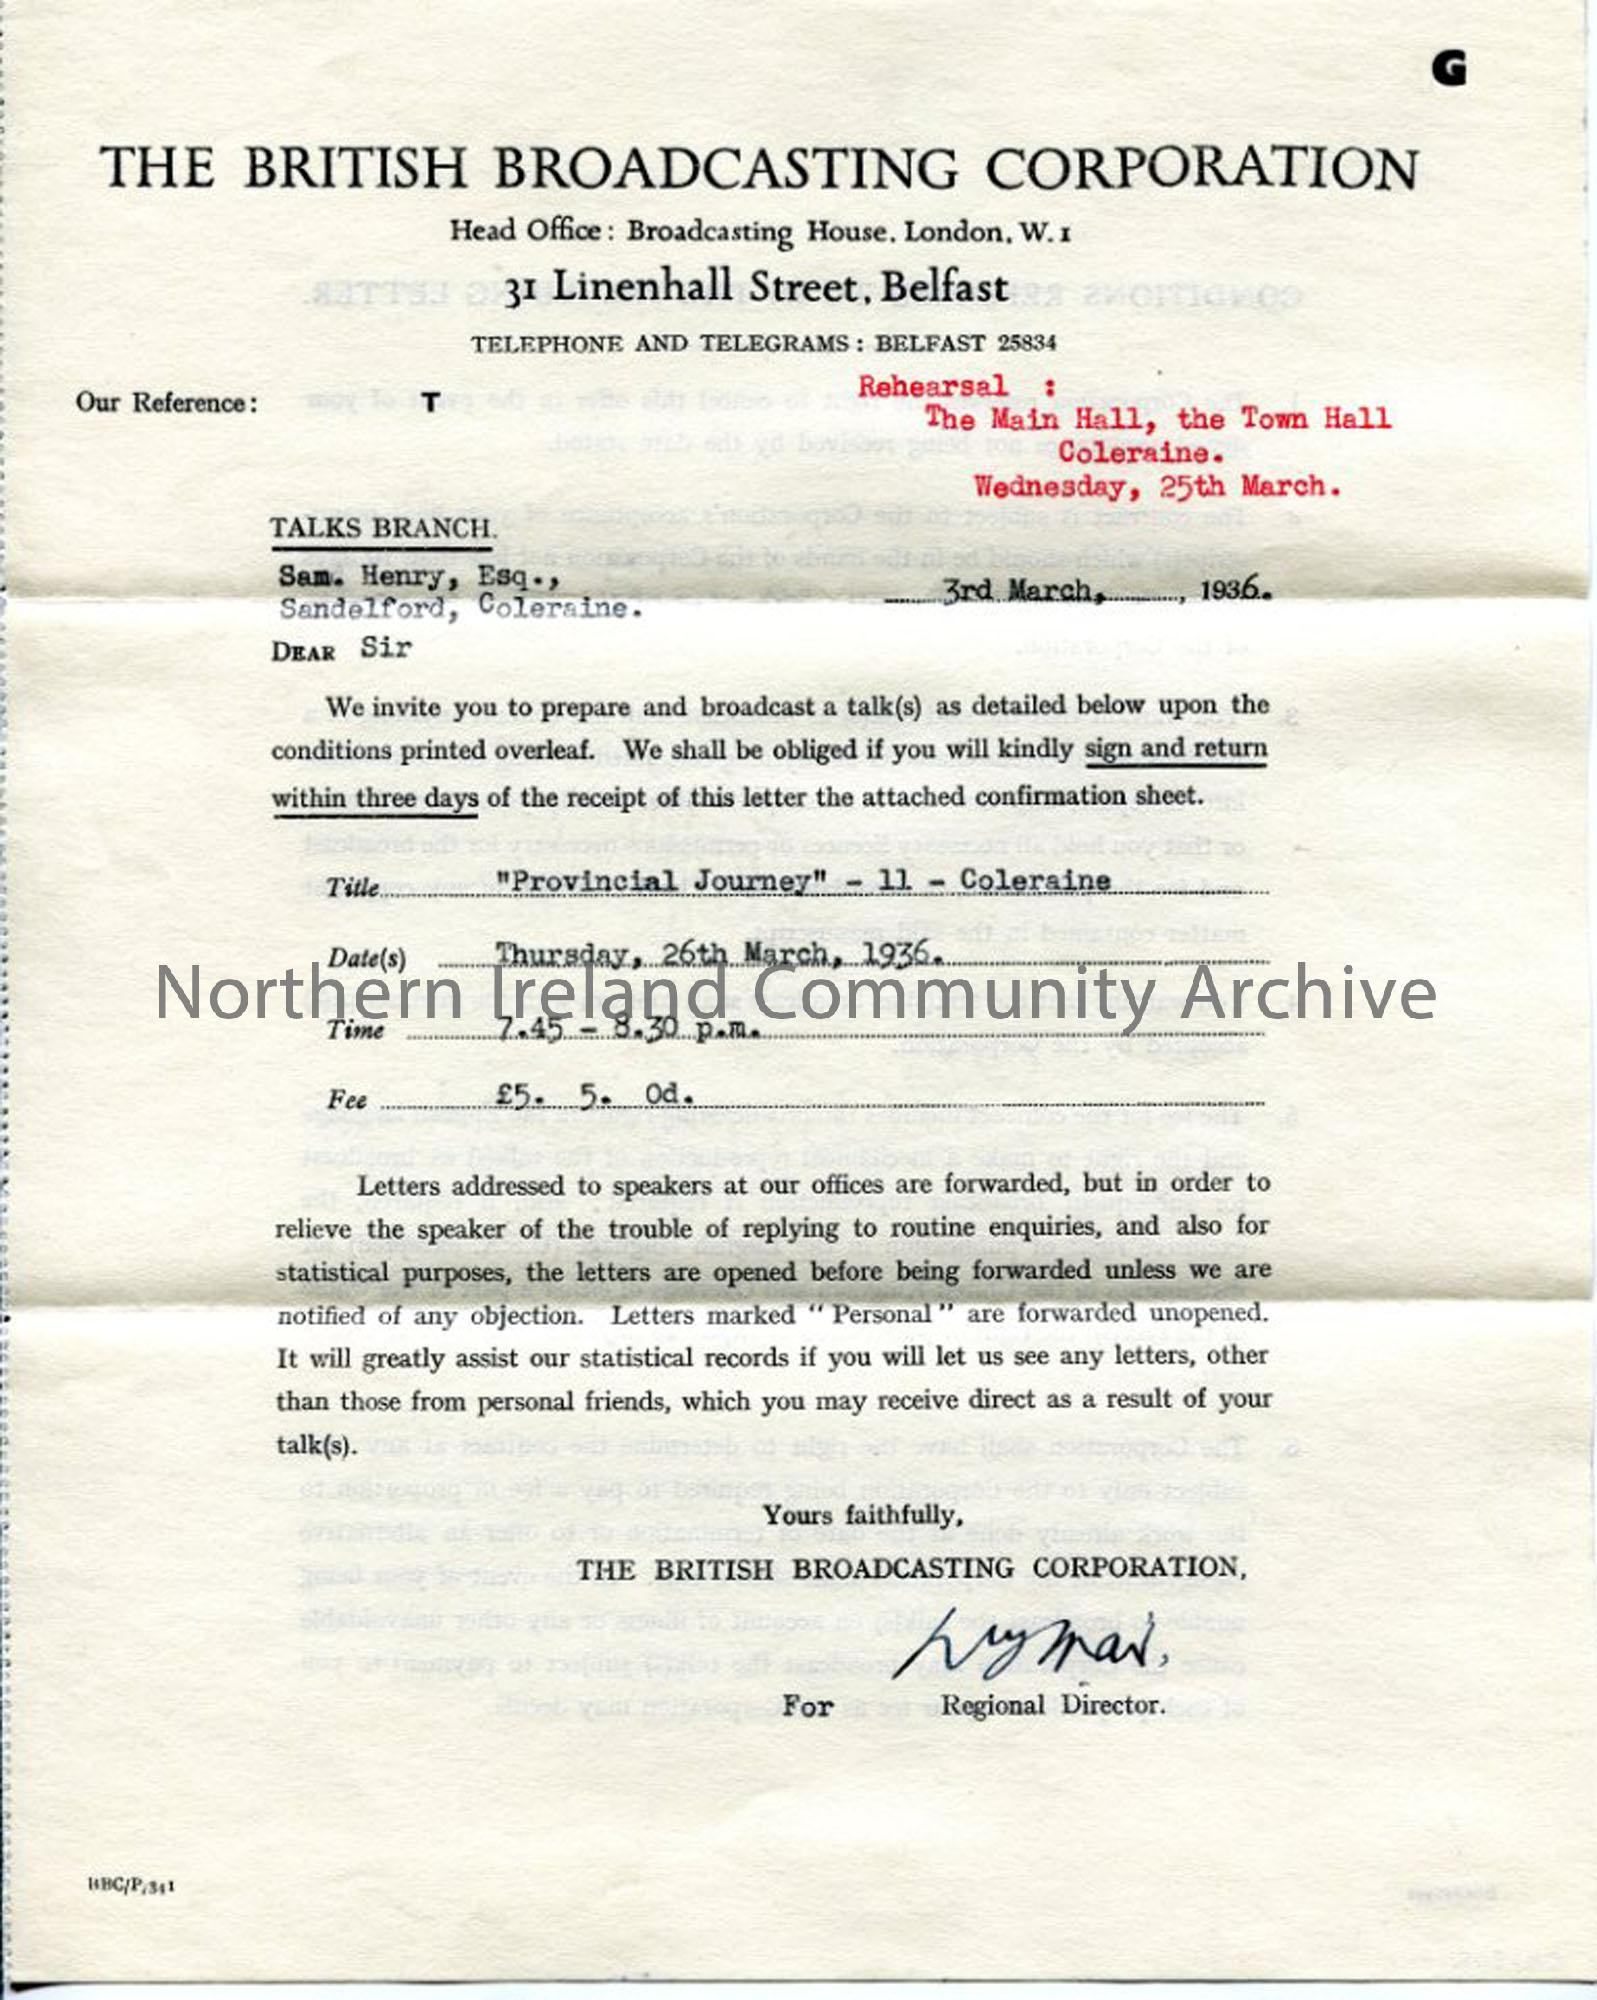 Letter/Contract from the Regional Director of the BBC, dated 3.3.1936